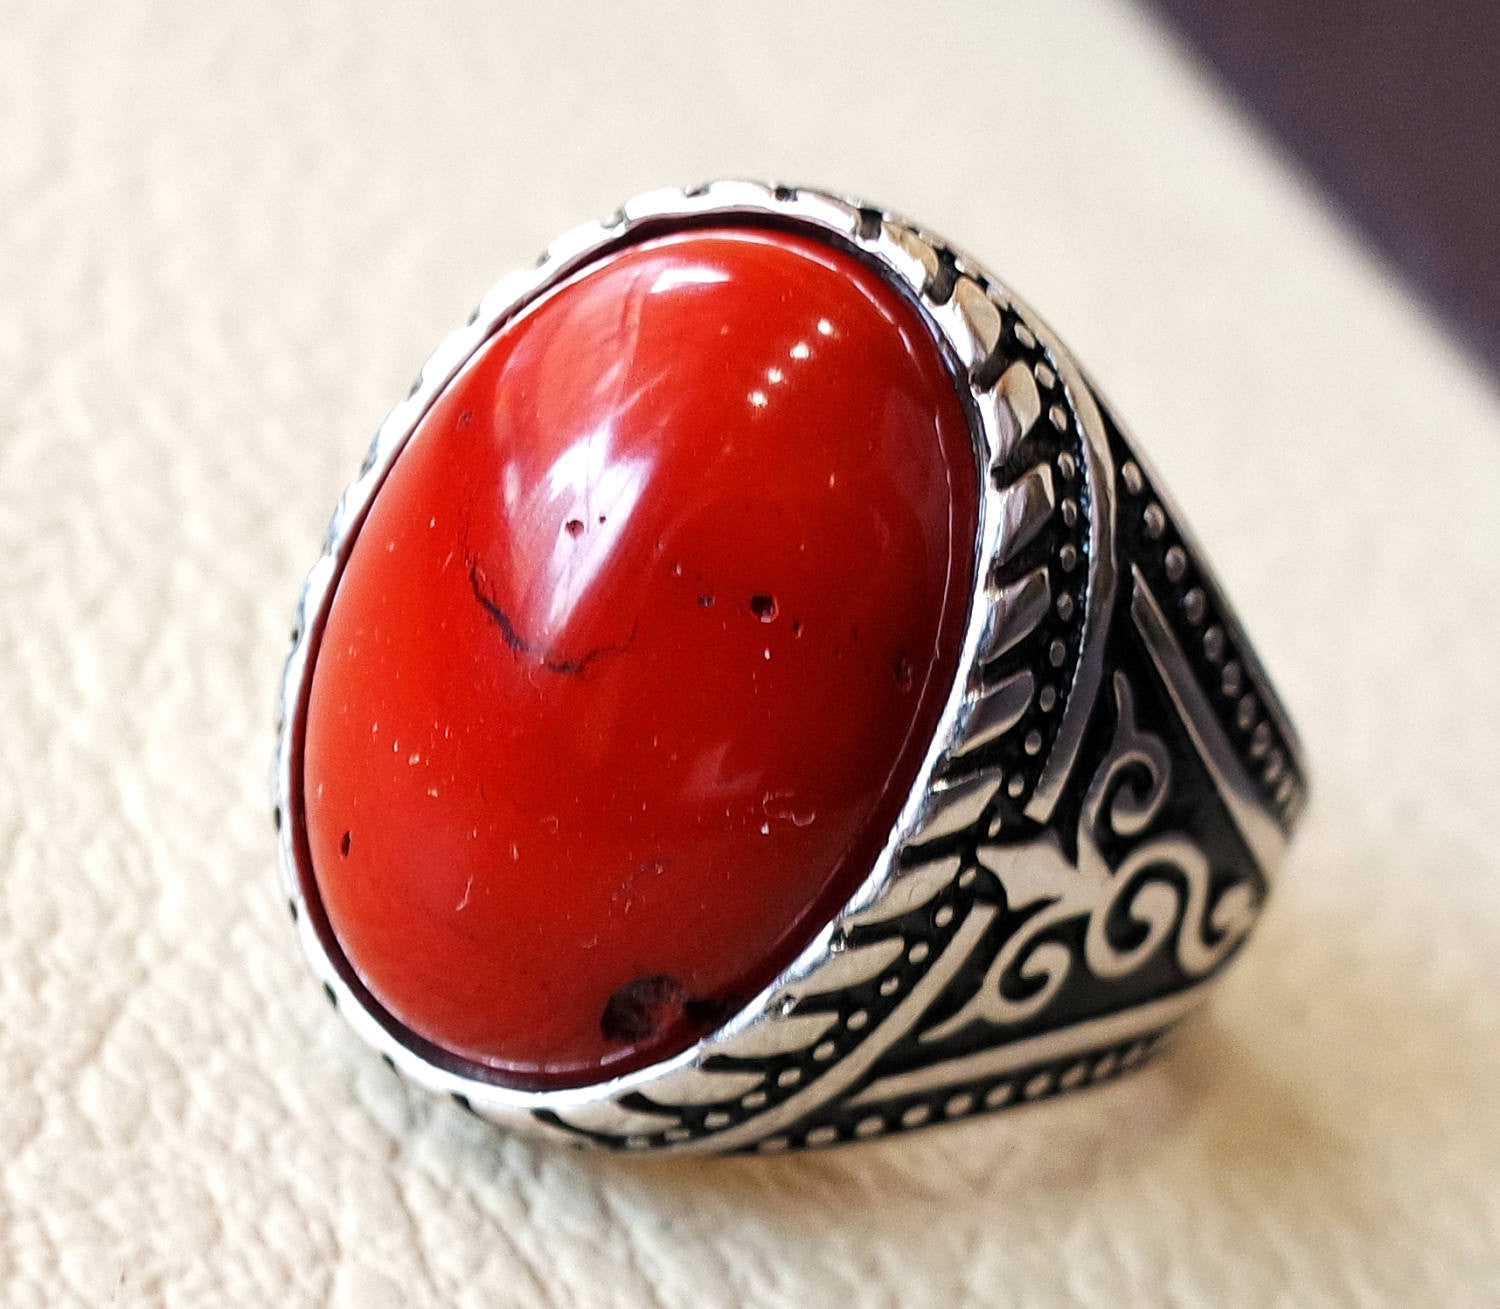 red jasper man ring stone natural aqeeq gem sterling silver 925 man ring oval semi precious cabochon jewelry fast shipping all sizes